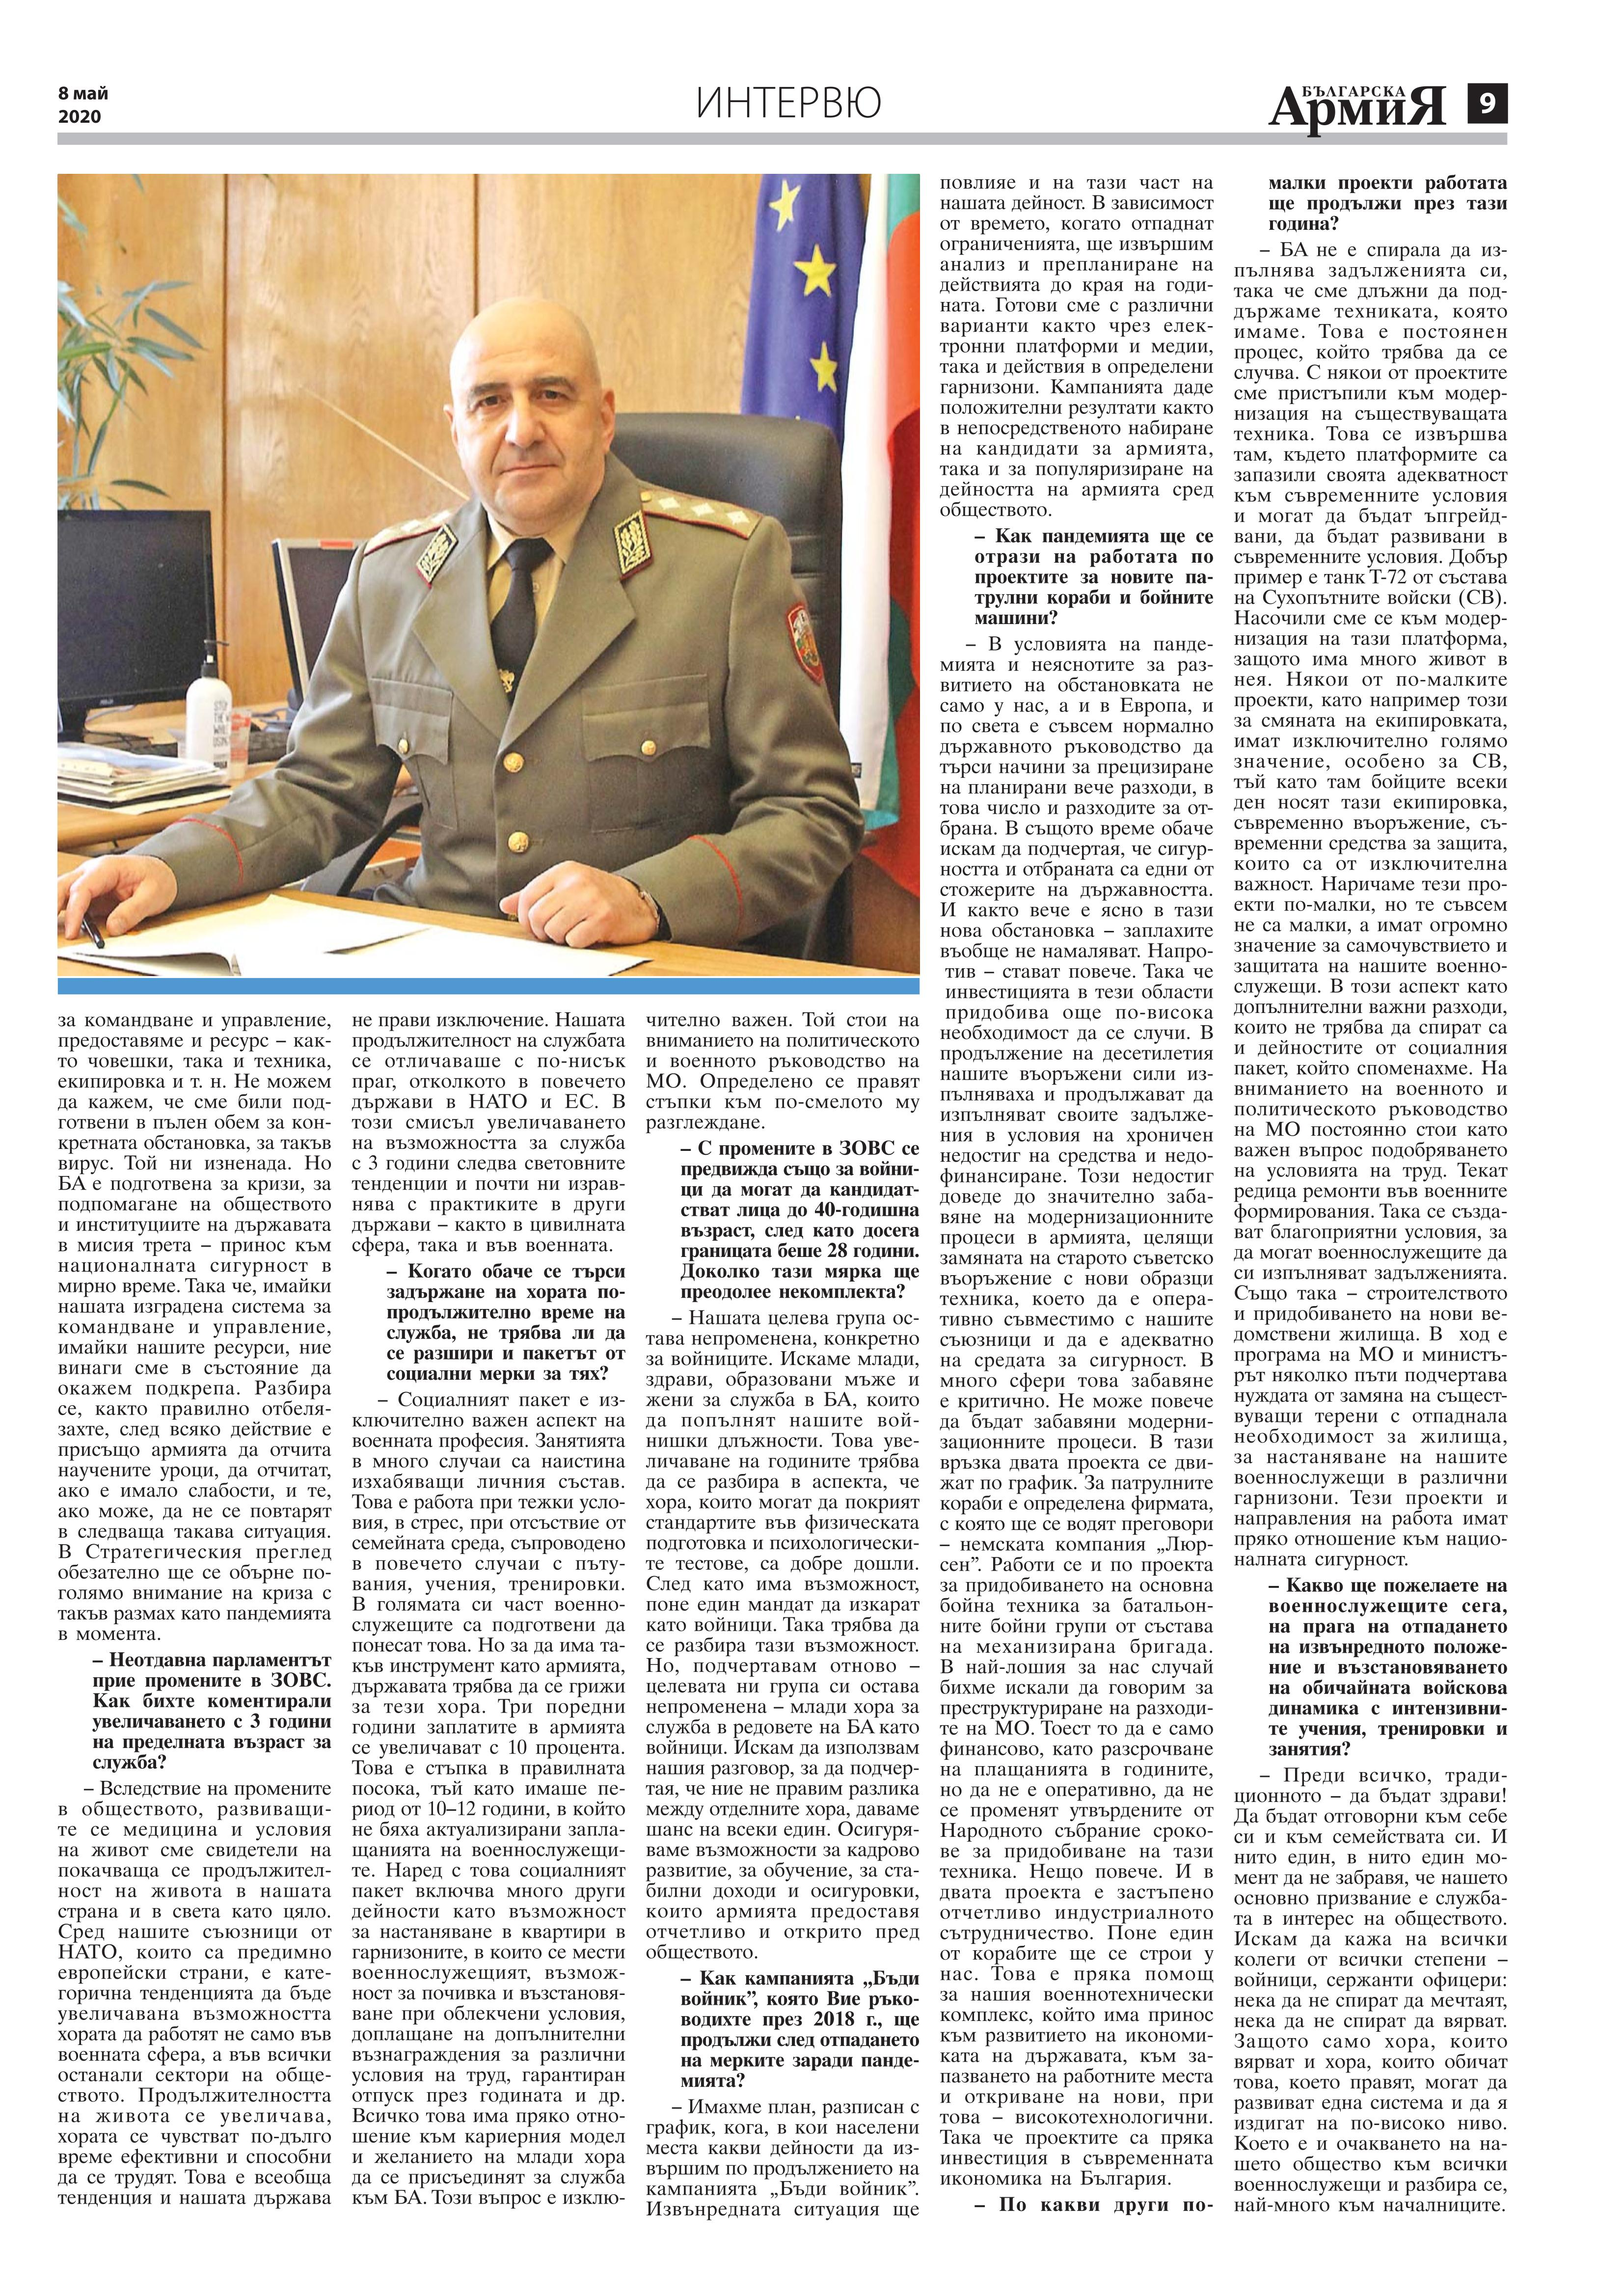 https://armymedia.bg/wp-content/uploads/2015/06/09.page1_-136.jpg